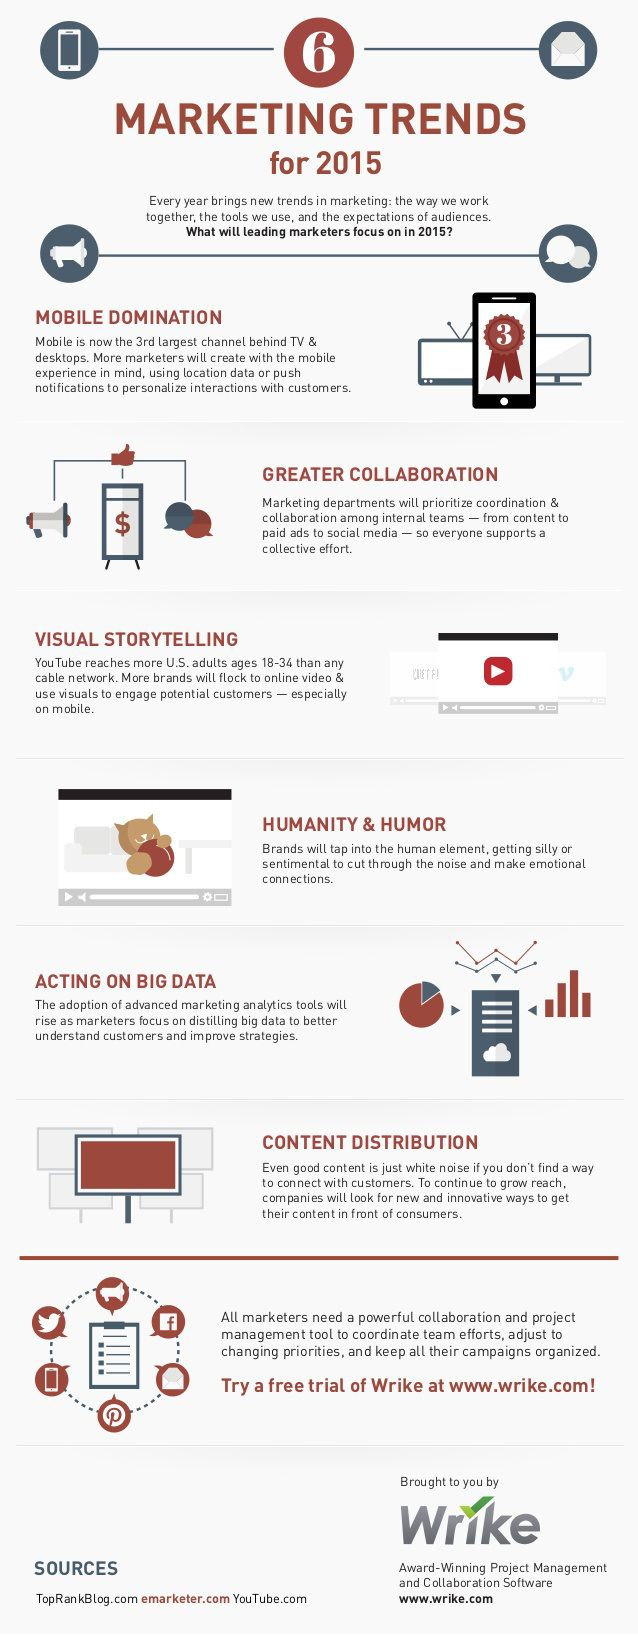 6 marketing trends for 2015 #infographic #marketing